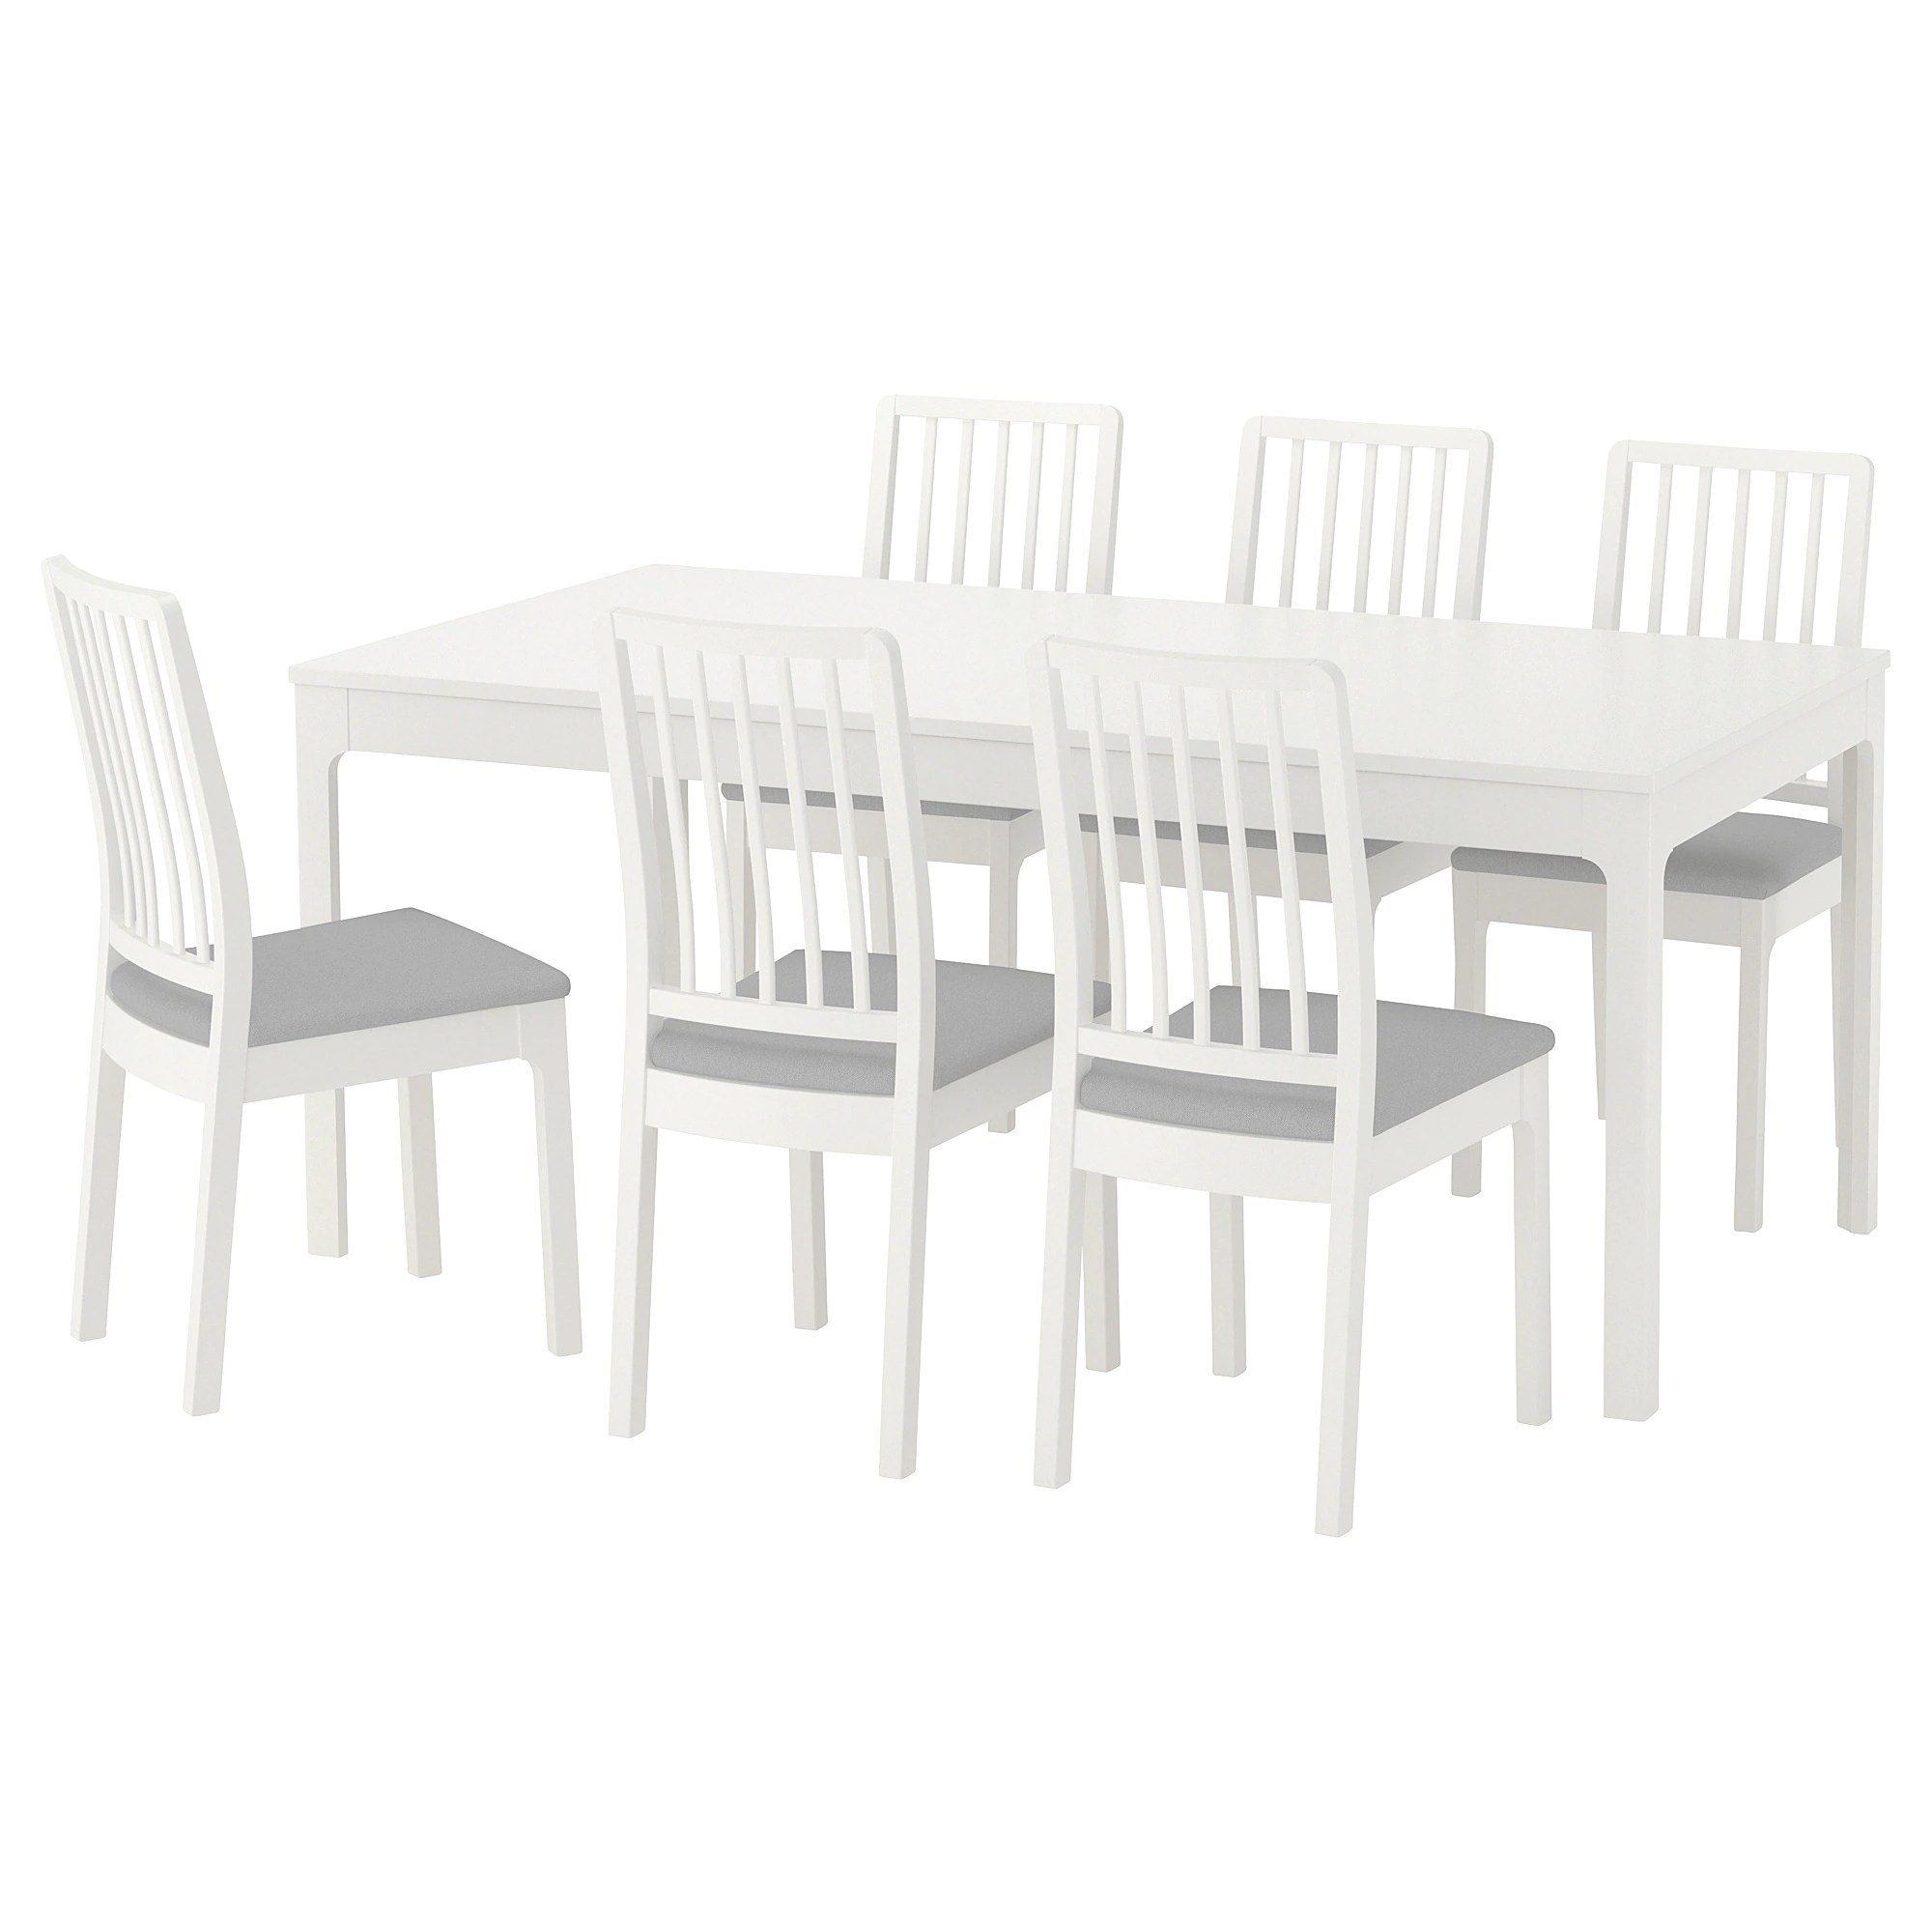 Table Ikea Blanche Ekedalen Ekedalen Table And 6 Chairs White Orrsta Light Gray